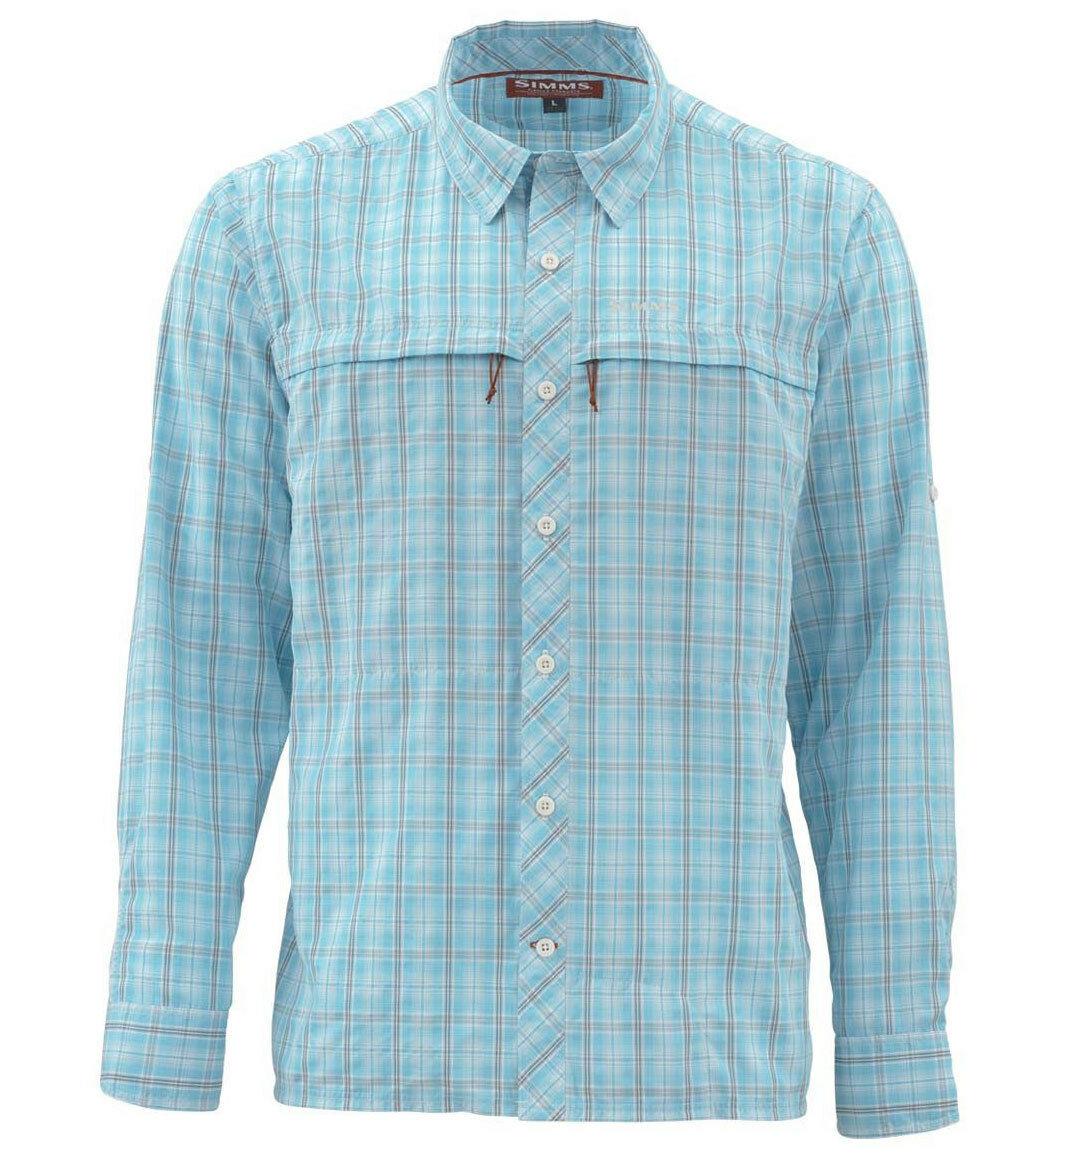 Simms Stone Cold  LS Shirt - Teal Plaid - XL - Free US Shipping  there are more brands of high-quality goods